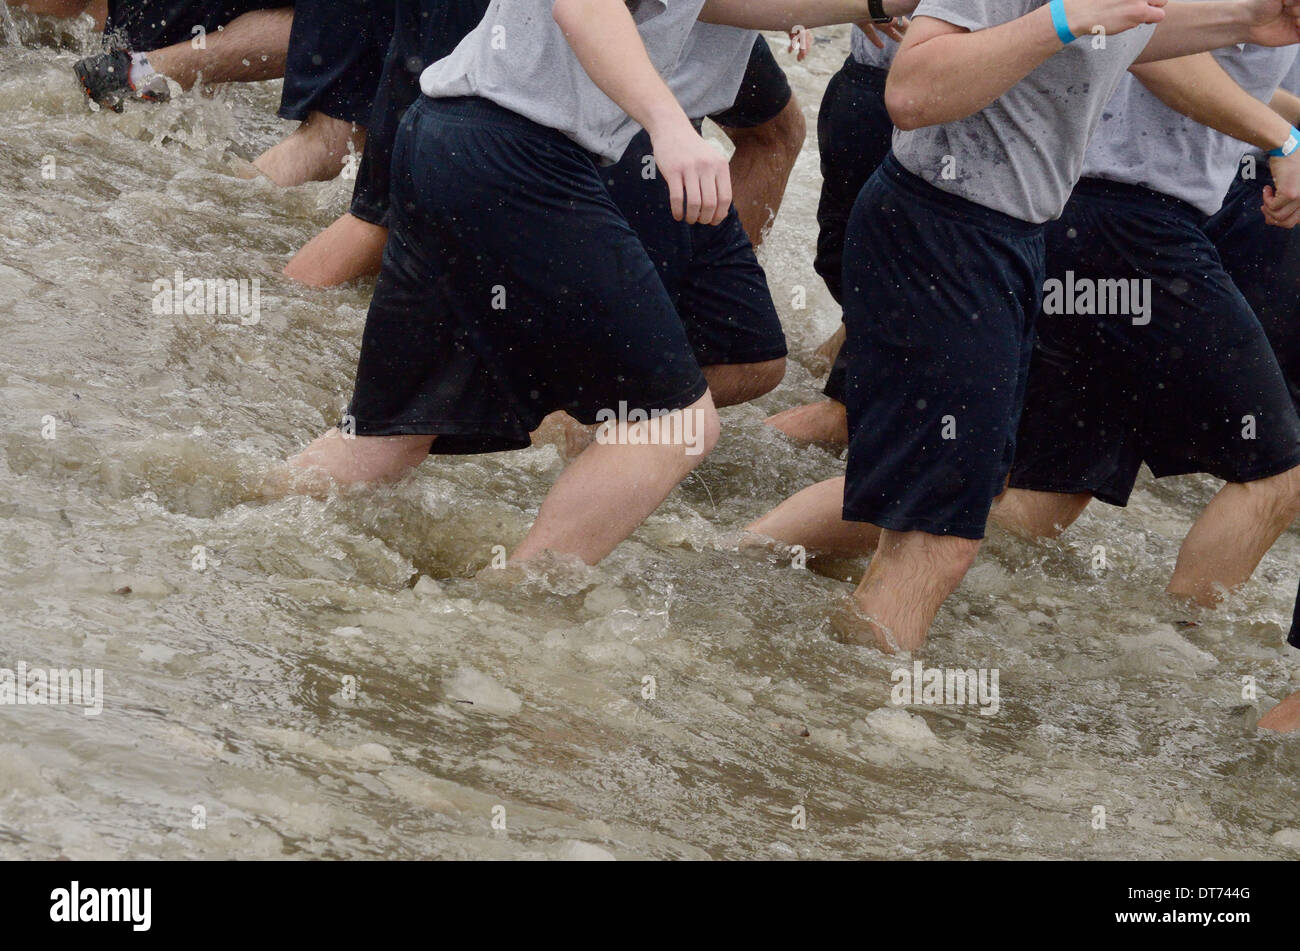 Team participants wear common shorts and shirts in Polar Swim. - Stock Image